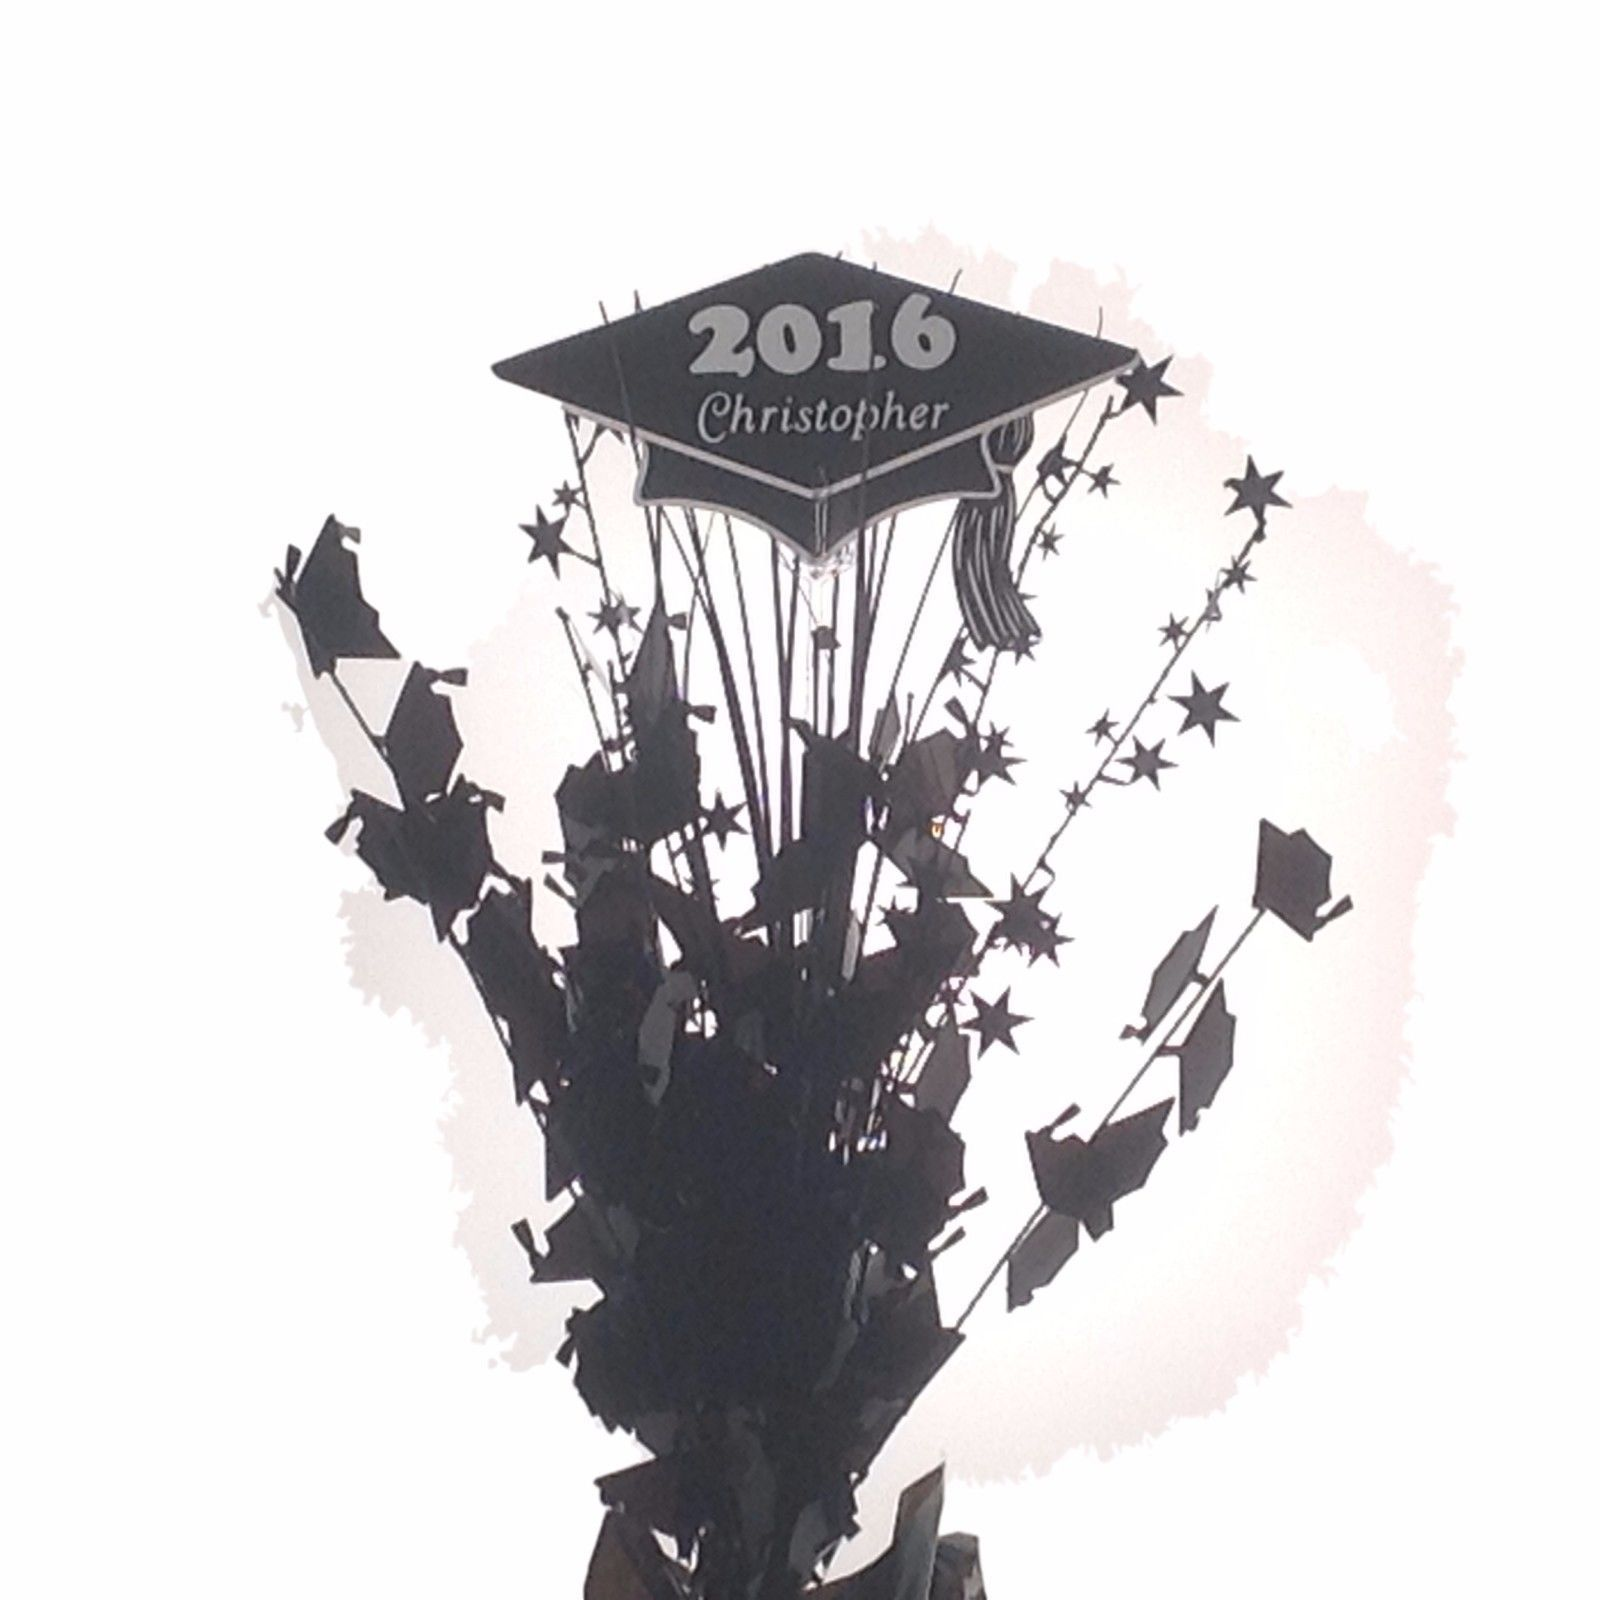 Personalized year & name Shiny Black Graduation Balloon Weight Centerpiece